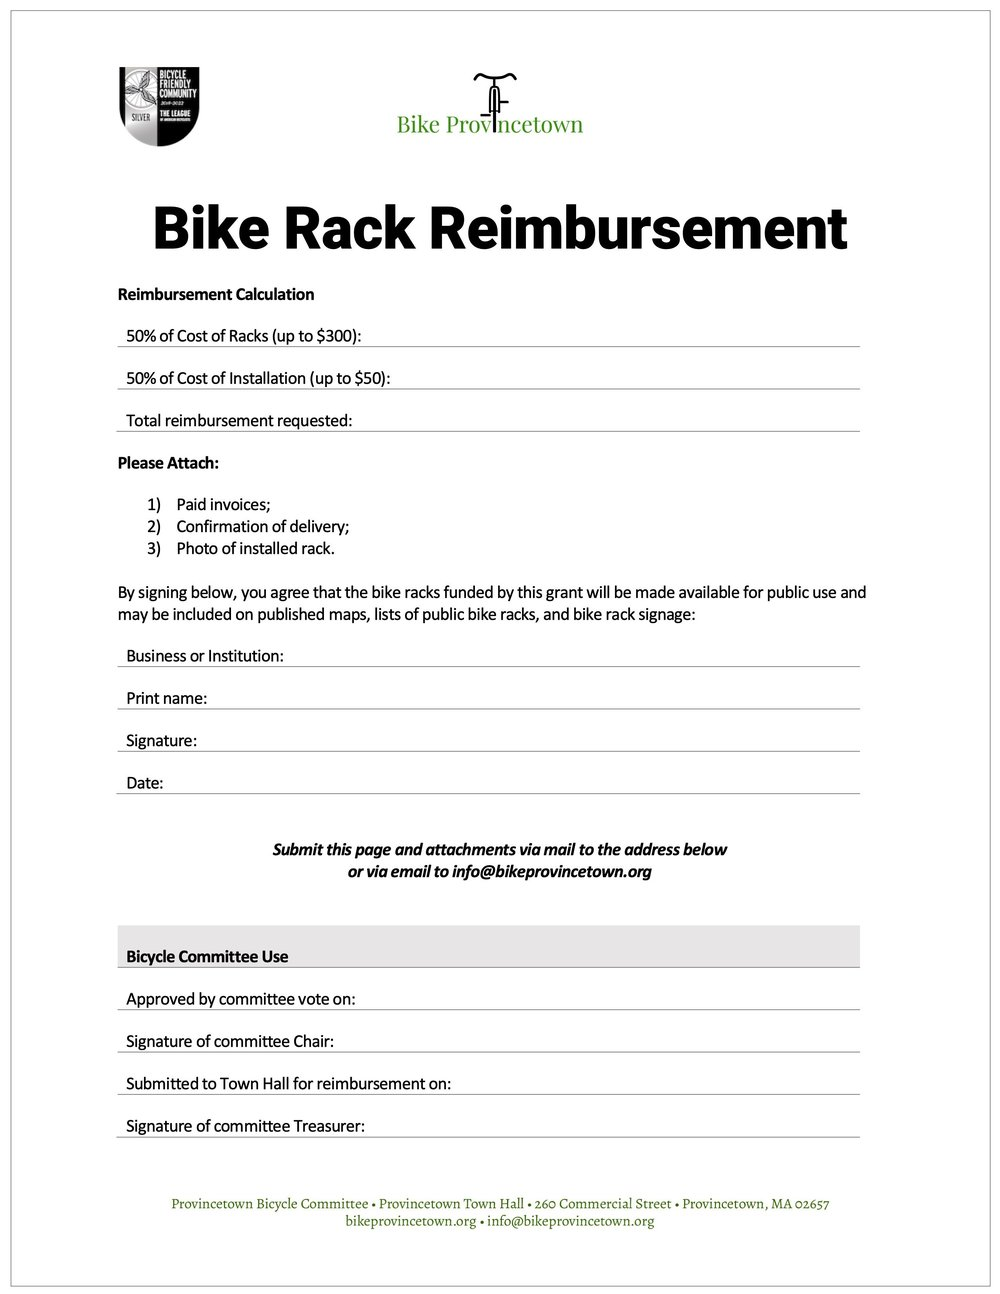 Bike Rack Reimbursement Form (PDF) »